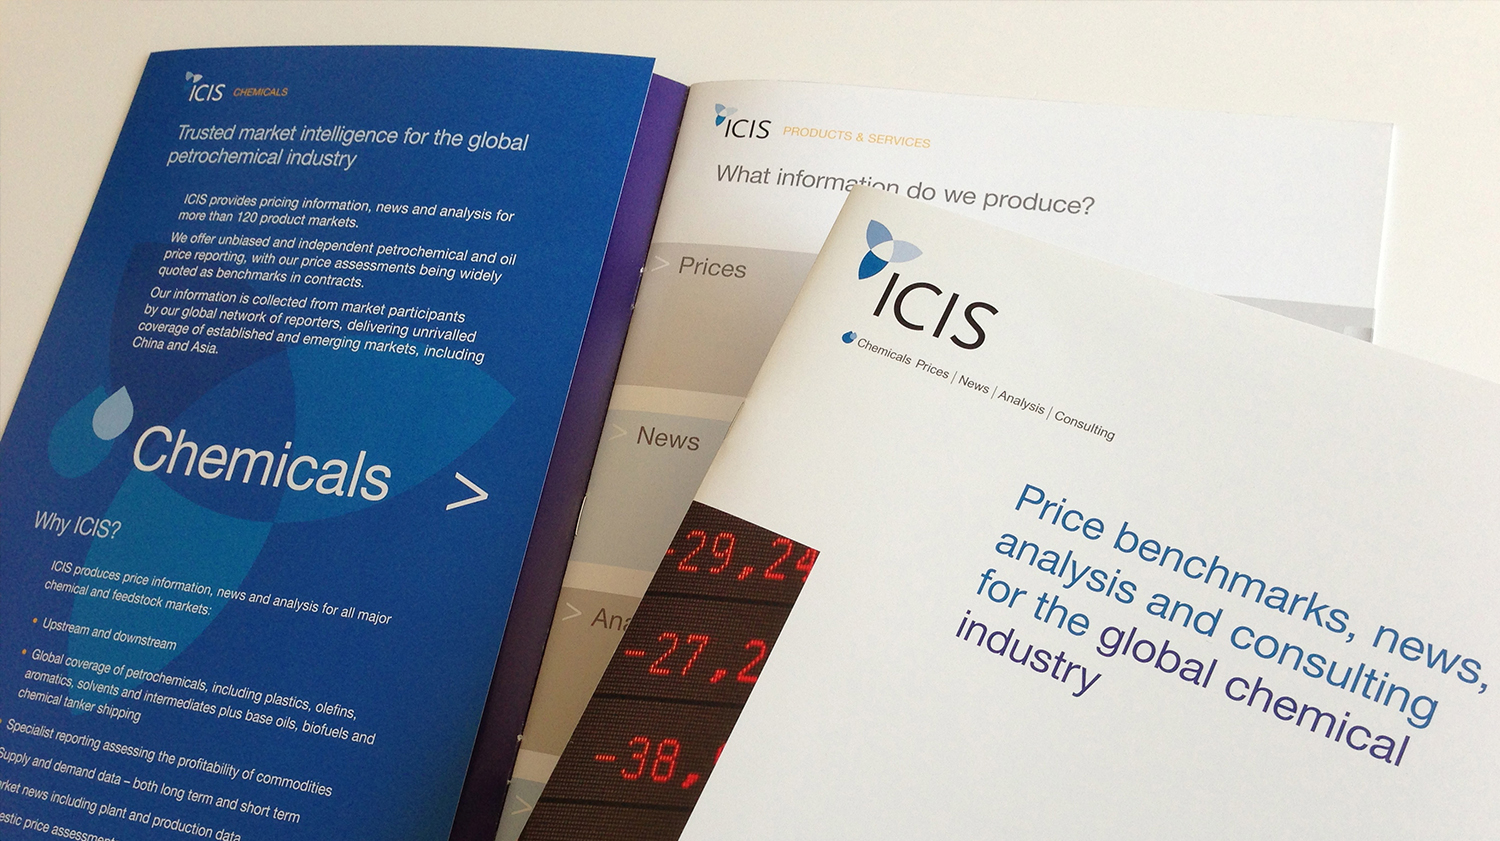 ICIS_Feature-Image_2